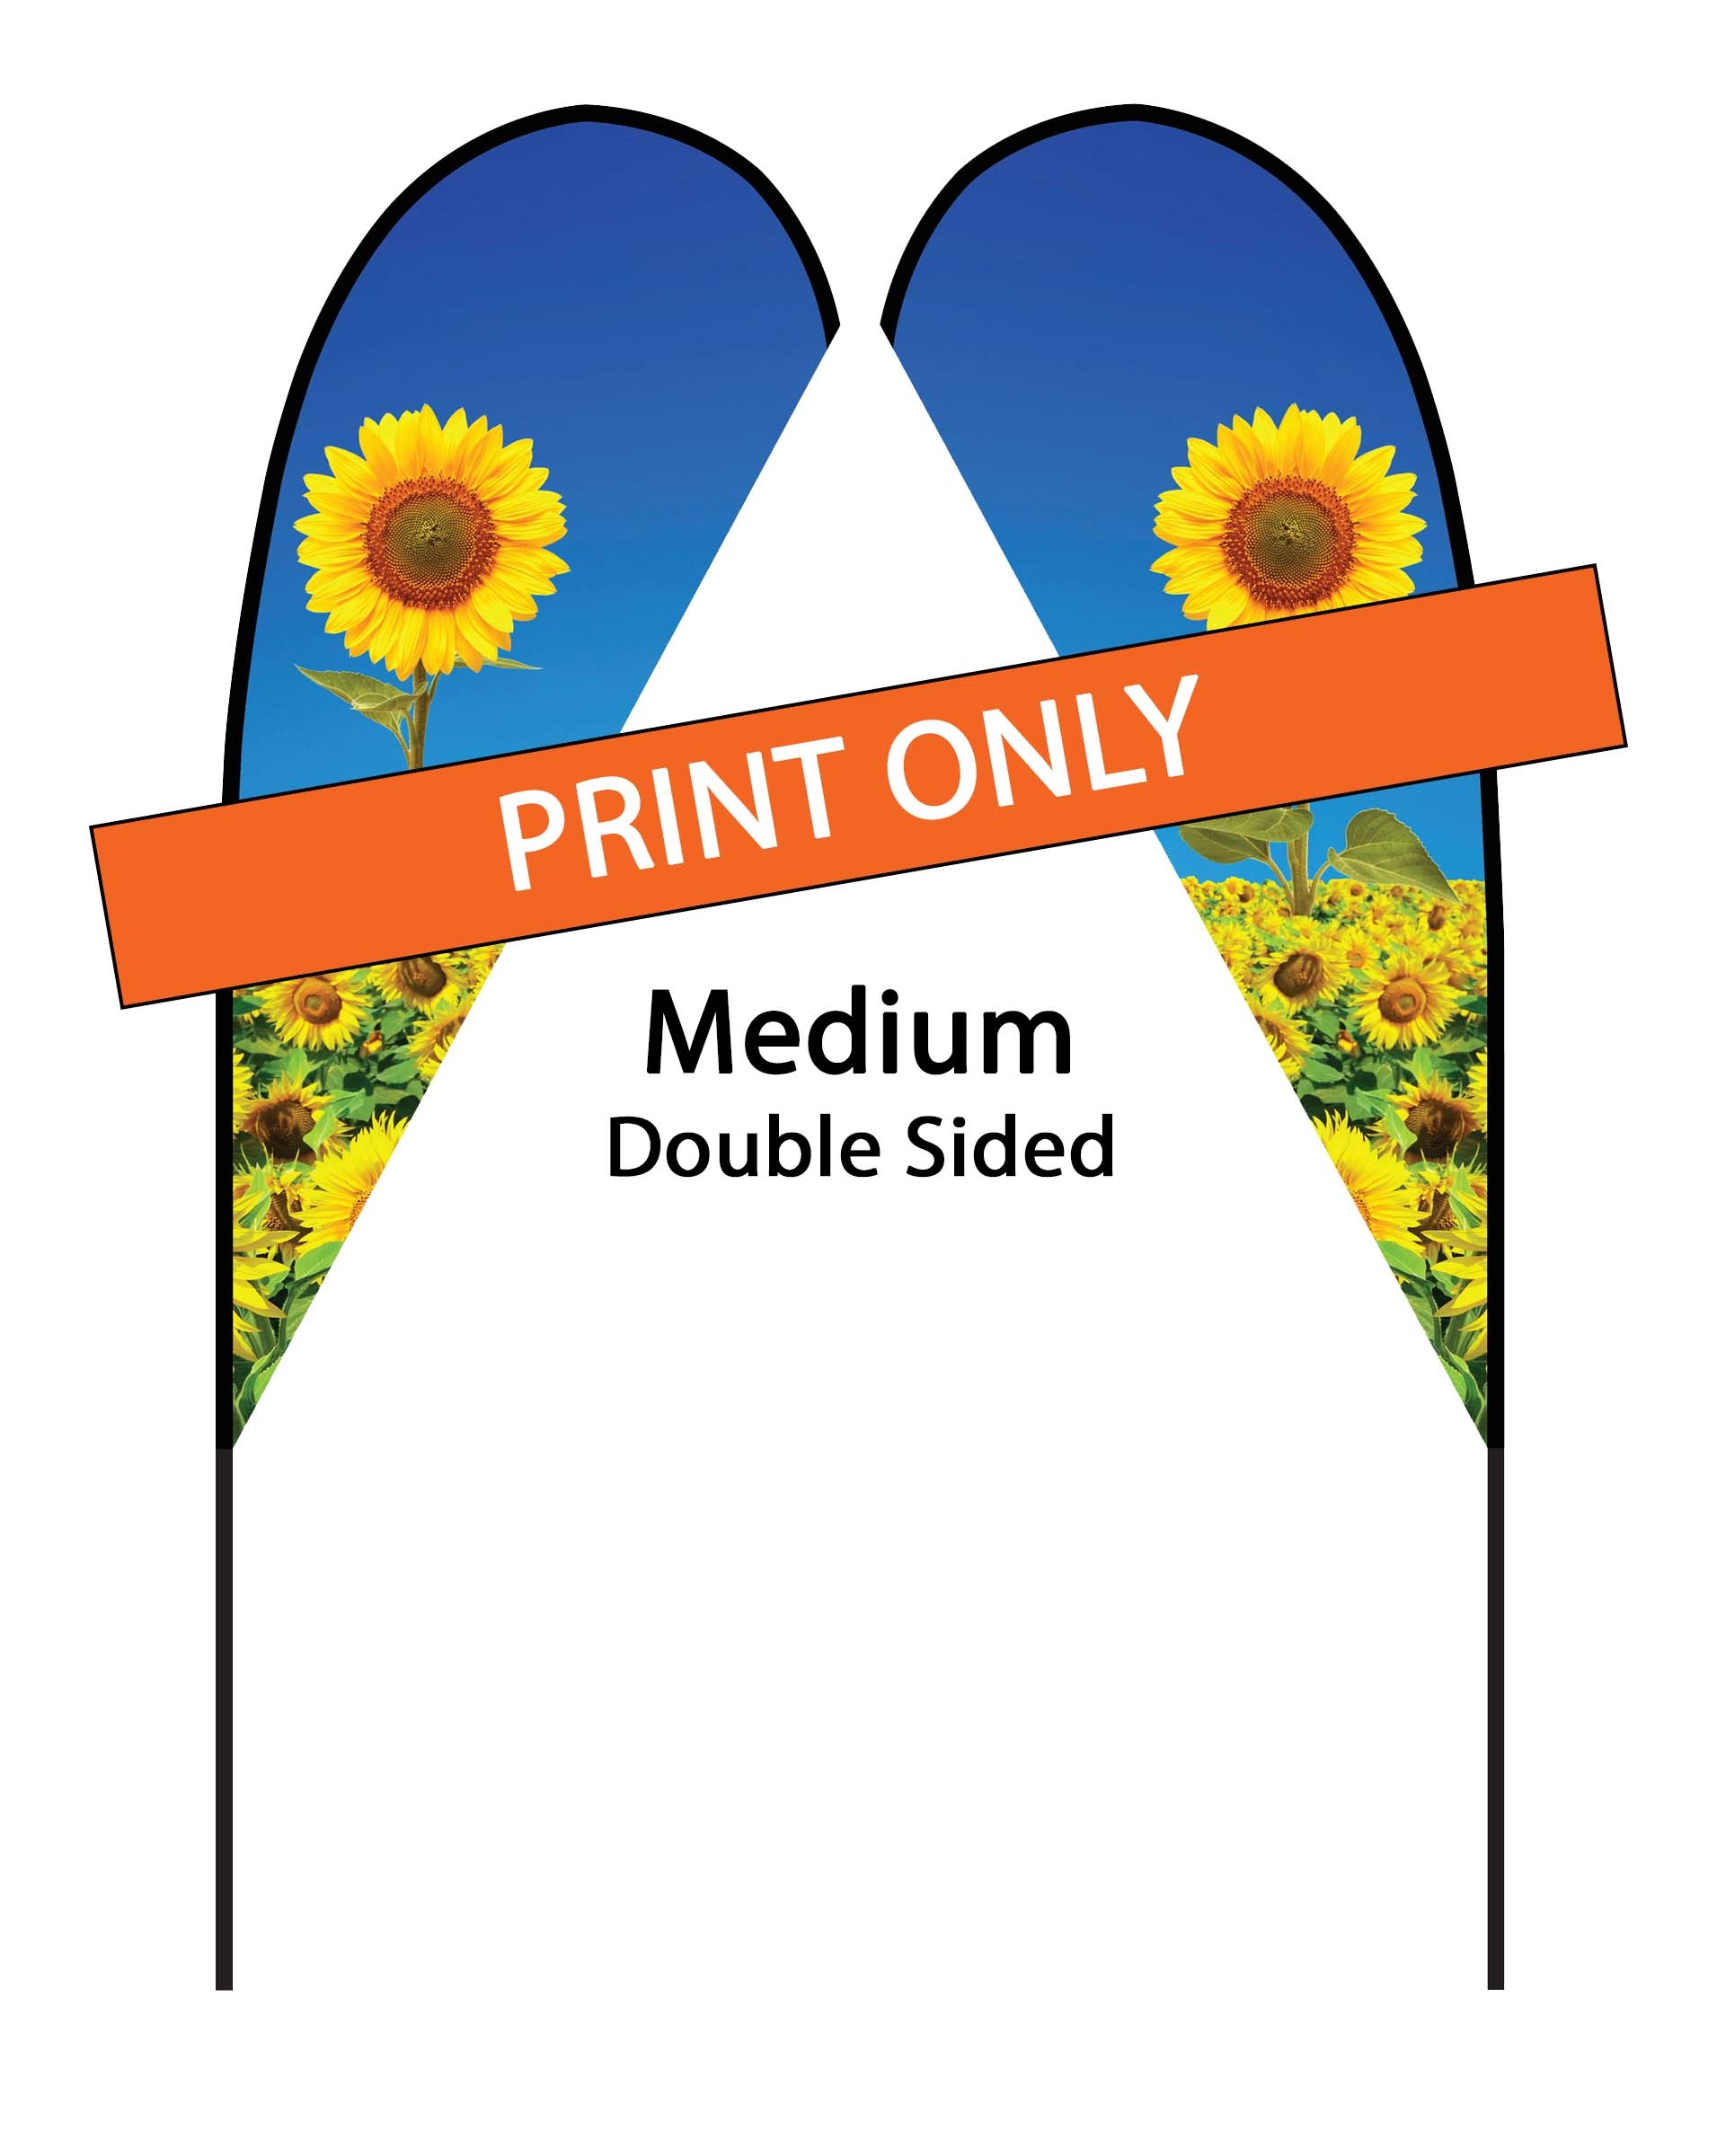 Teardrop Flag 9' Premium Double-Sided Print Only (Medium)